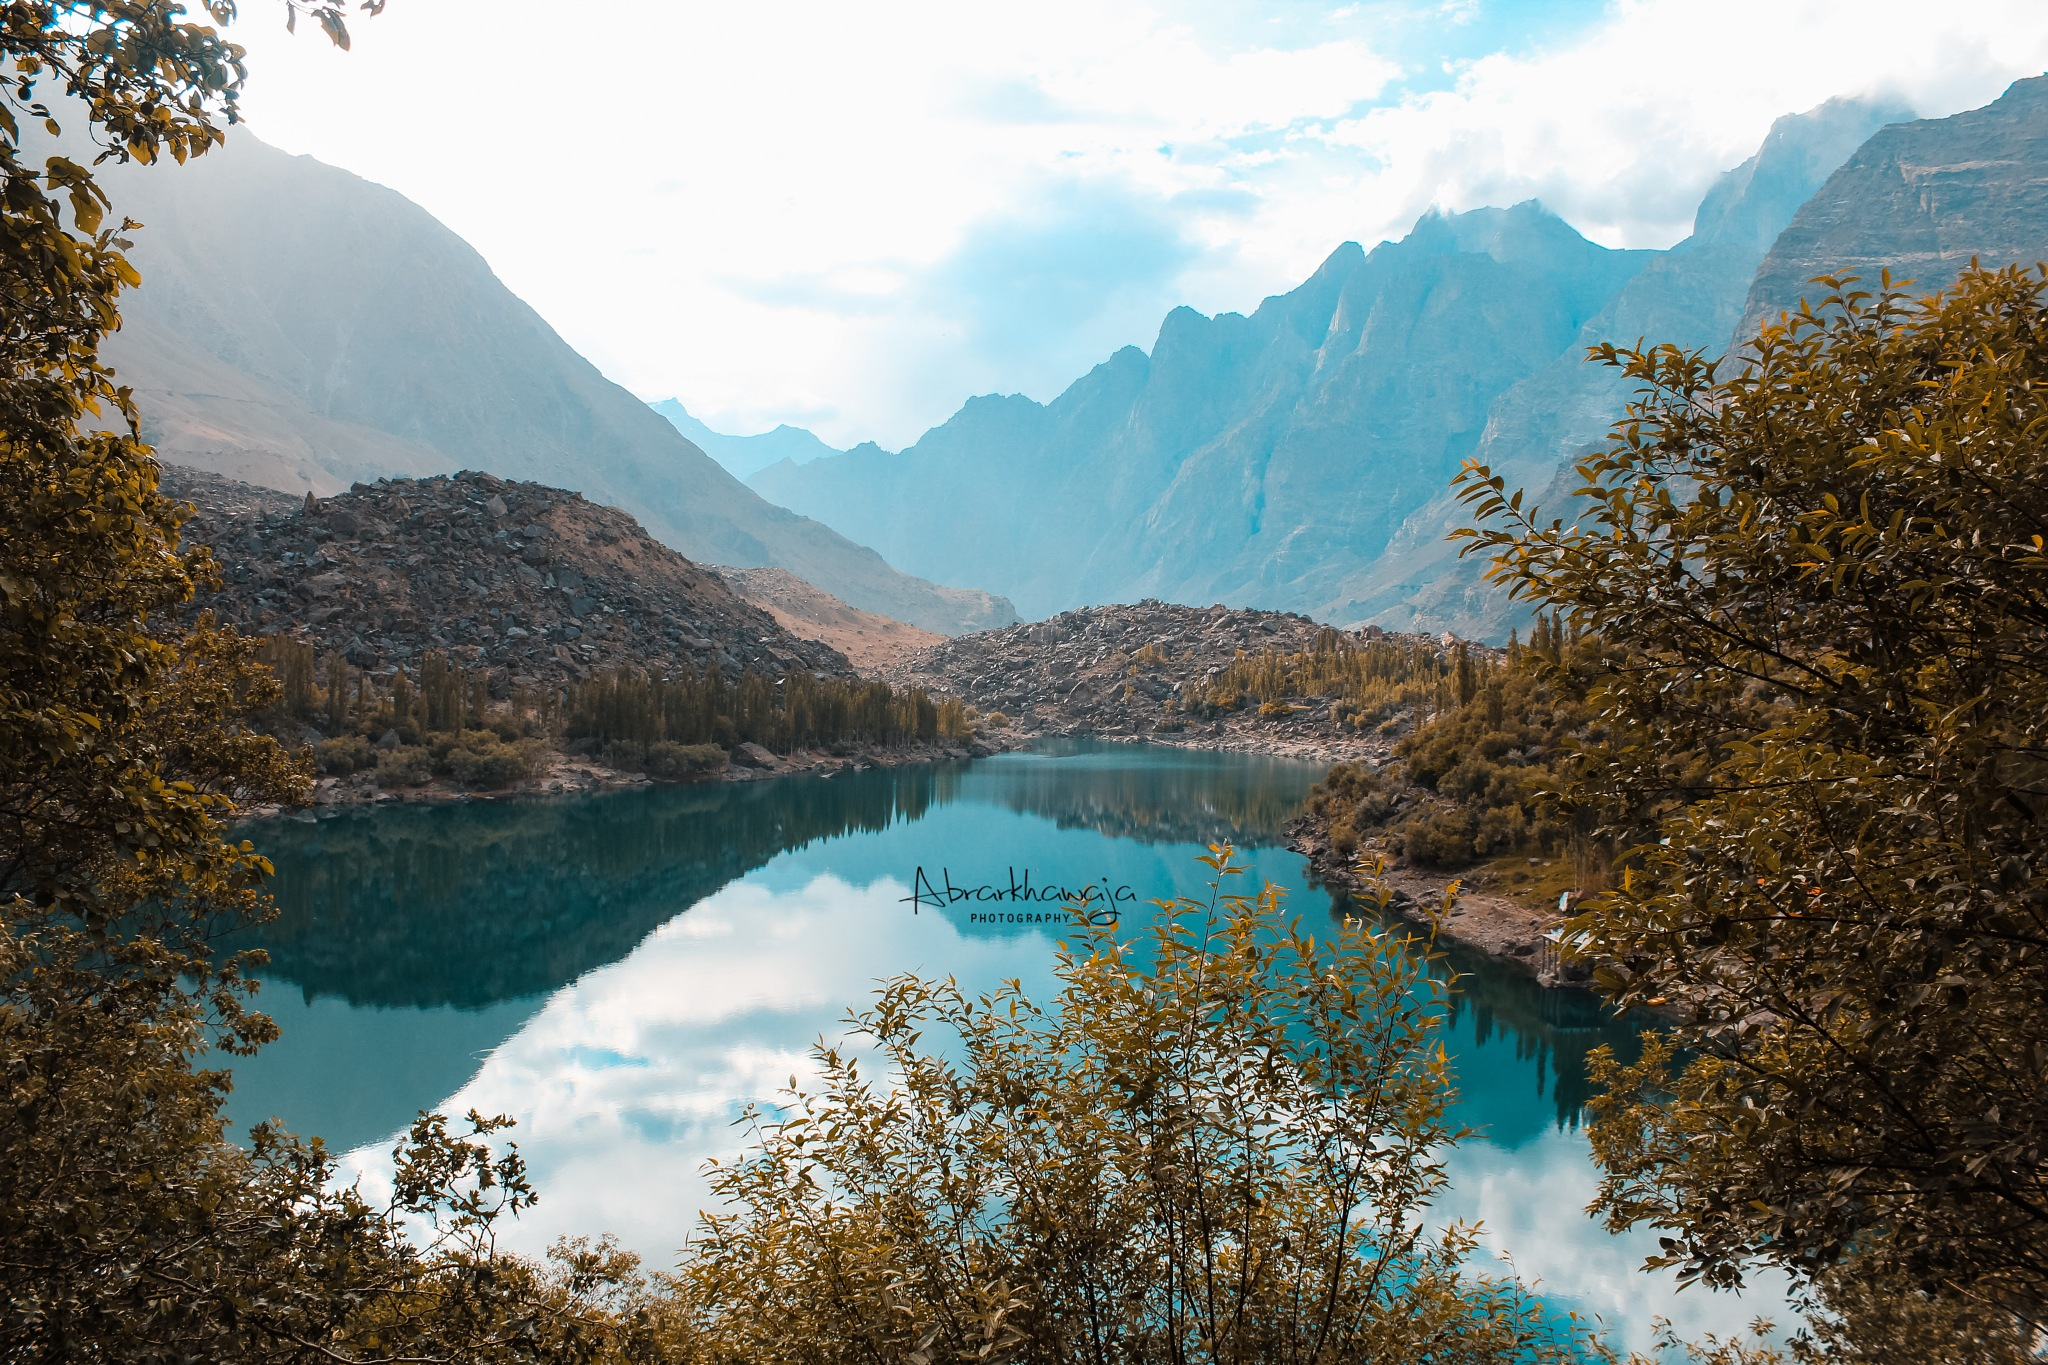 upper kachura lake skardu by Abrar khawaja